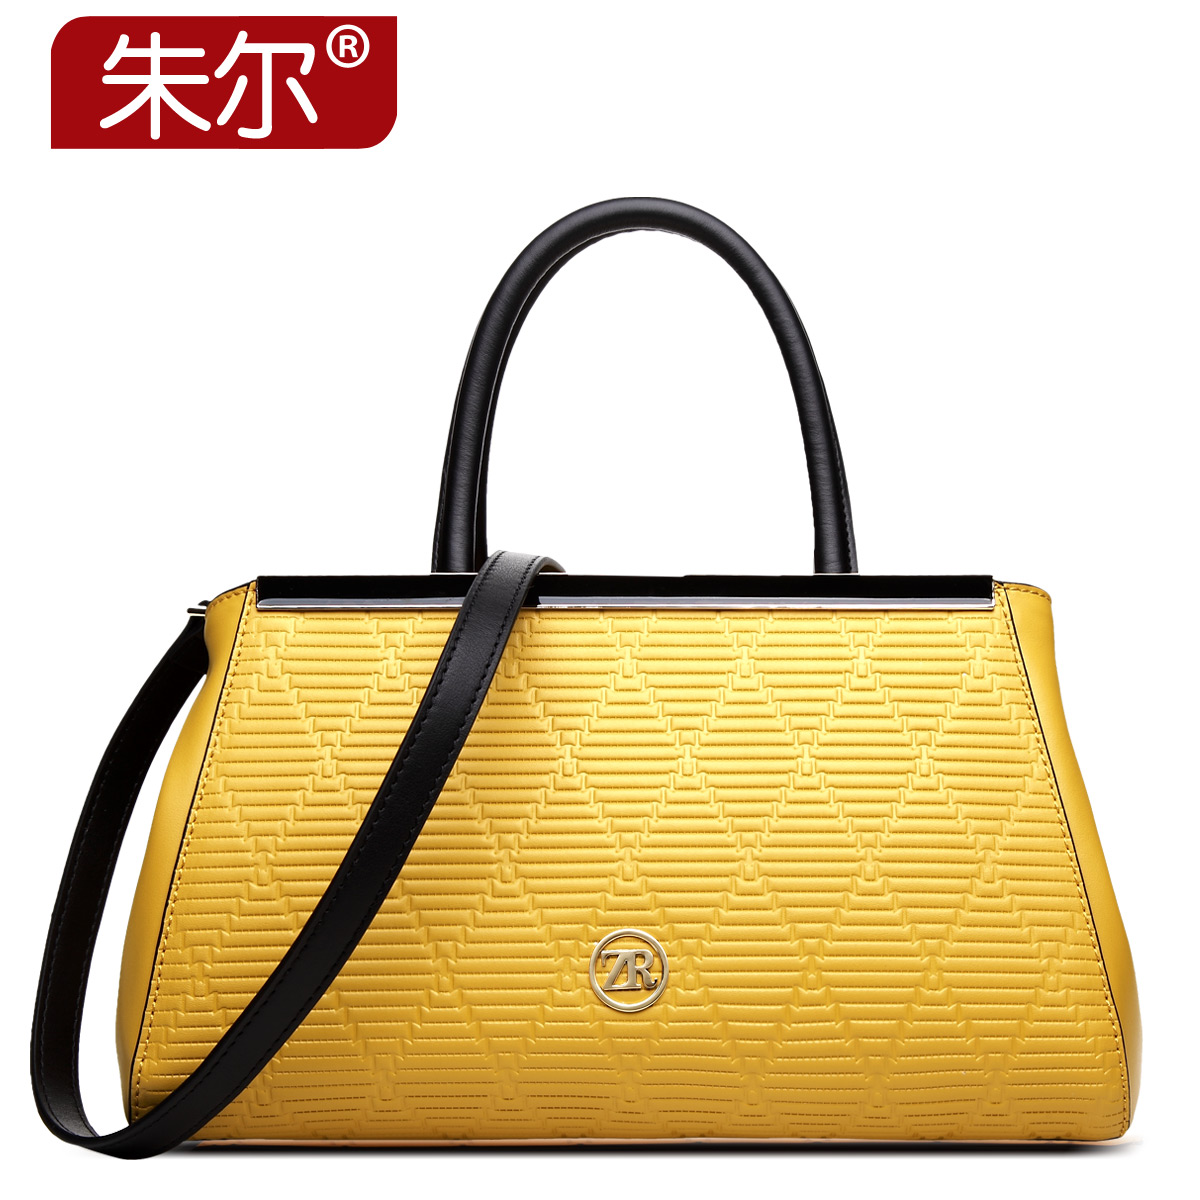 2015 women's cowhide handbag fashion bright color women's bags ladies elegant female handbag